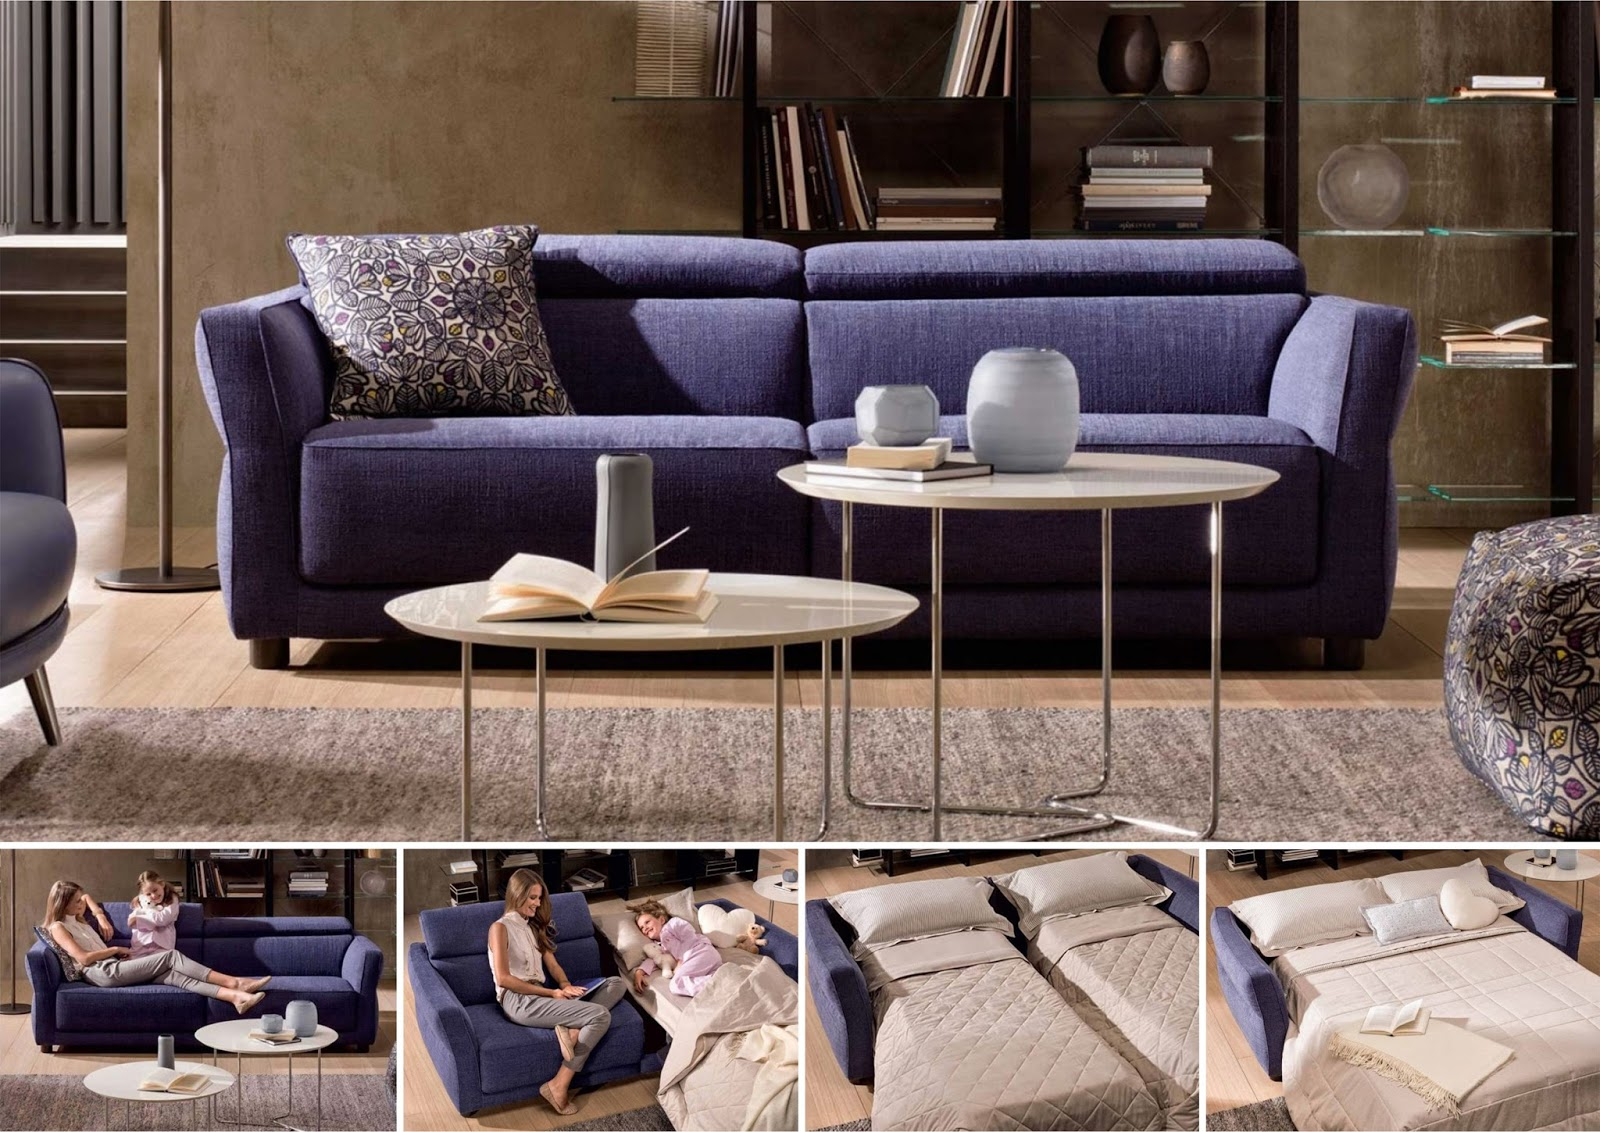 Beau Looks Like A Regular Sofa, But Converts To A Bed Whenever The Need Arises.  Bolero Is A New Sofa Bed With The Fama Distinctive Style.